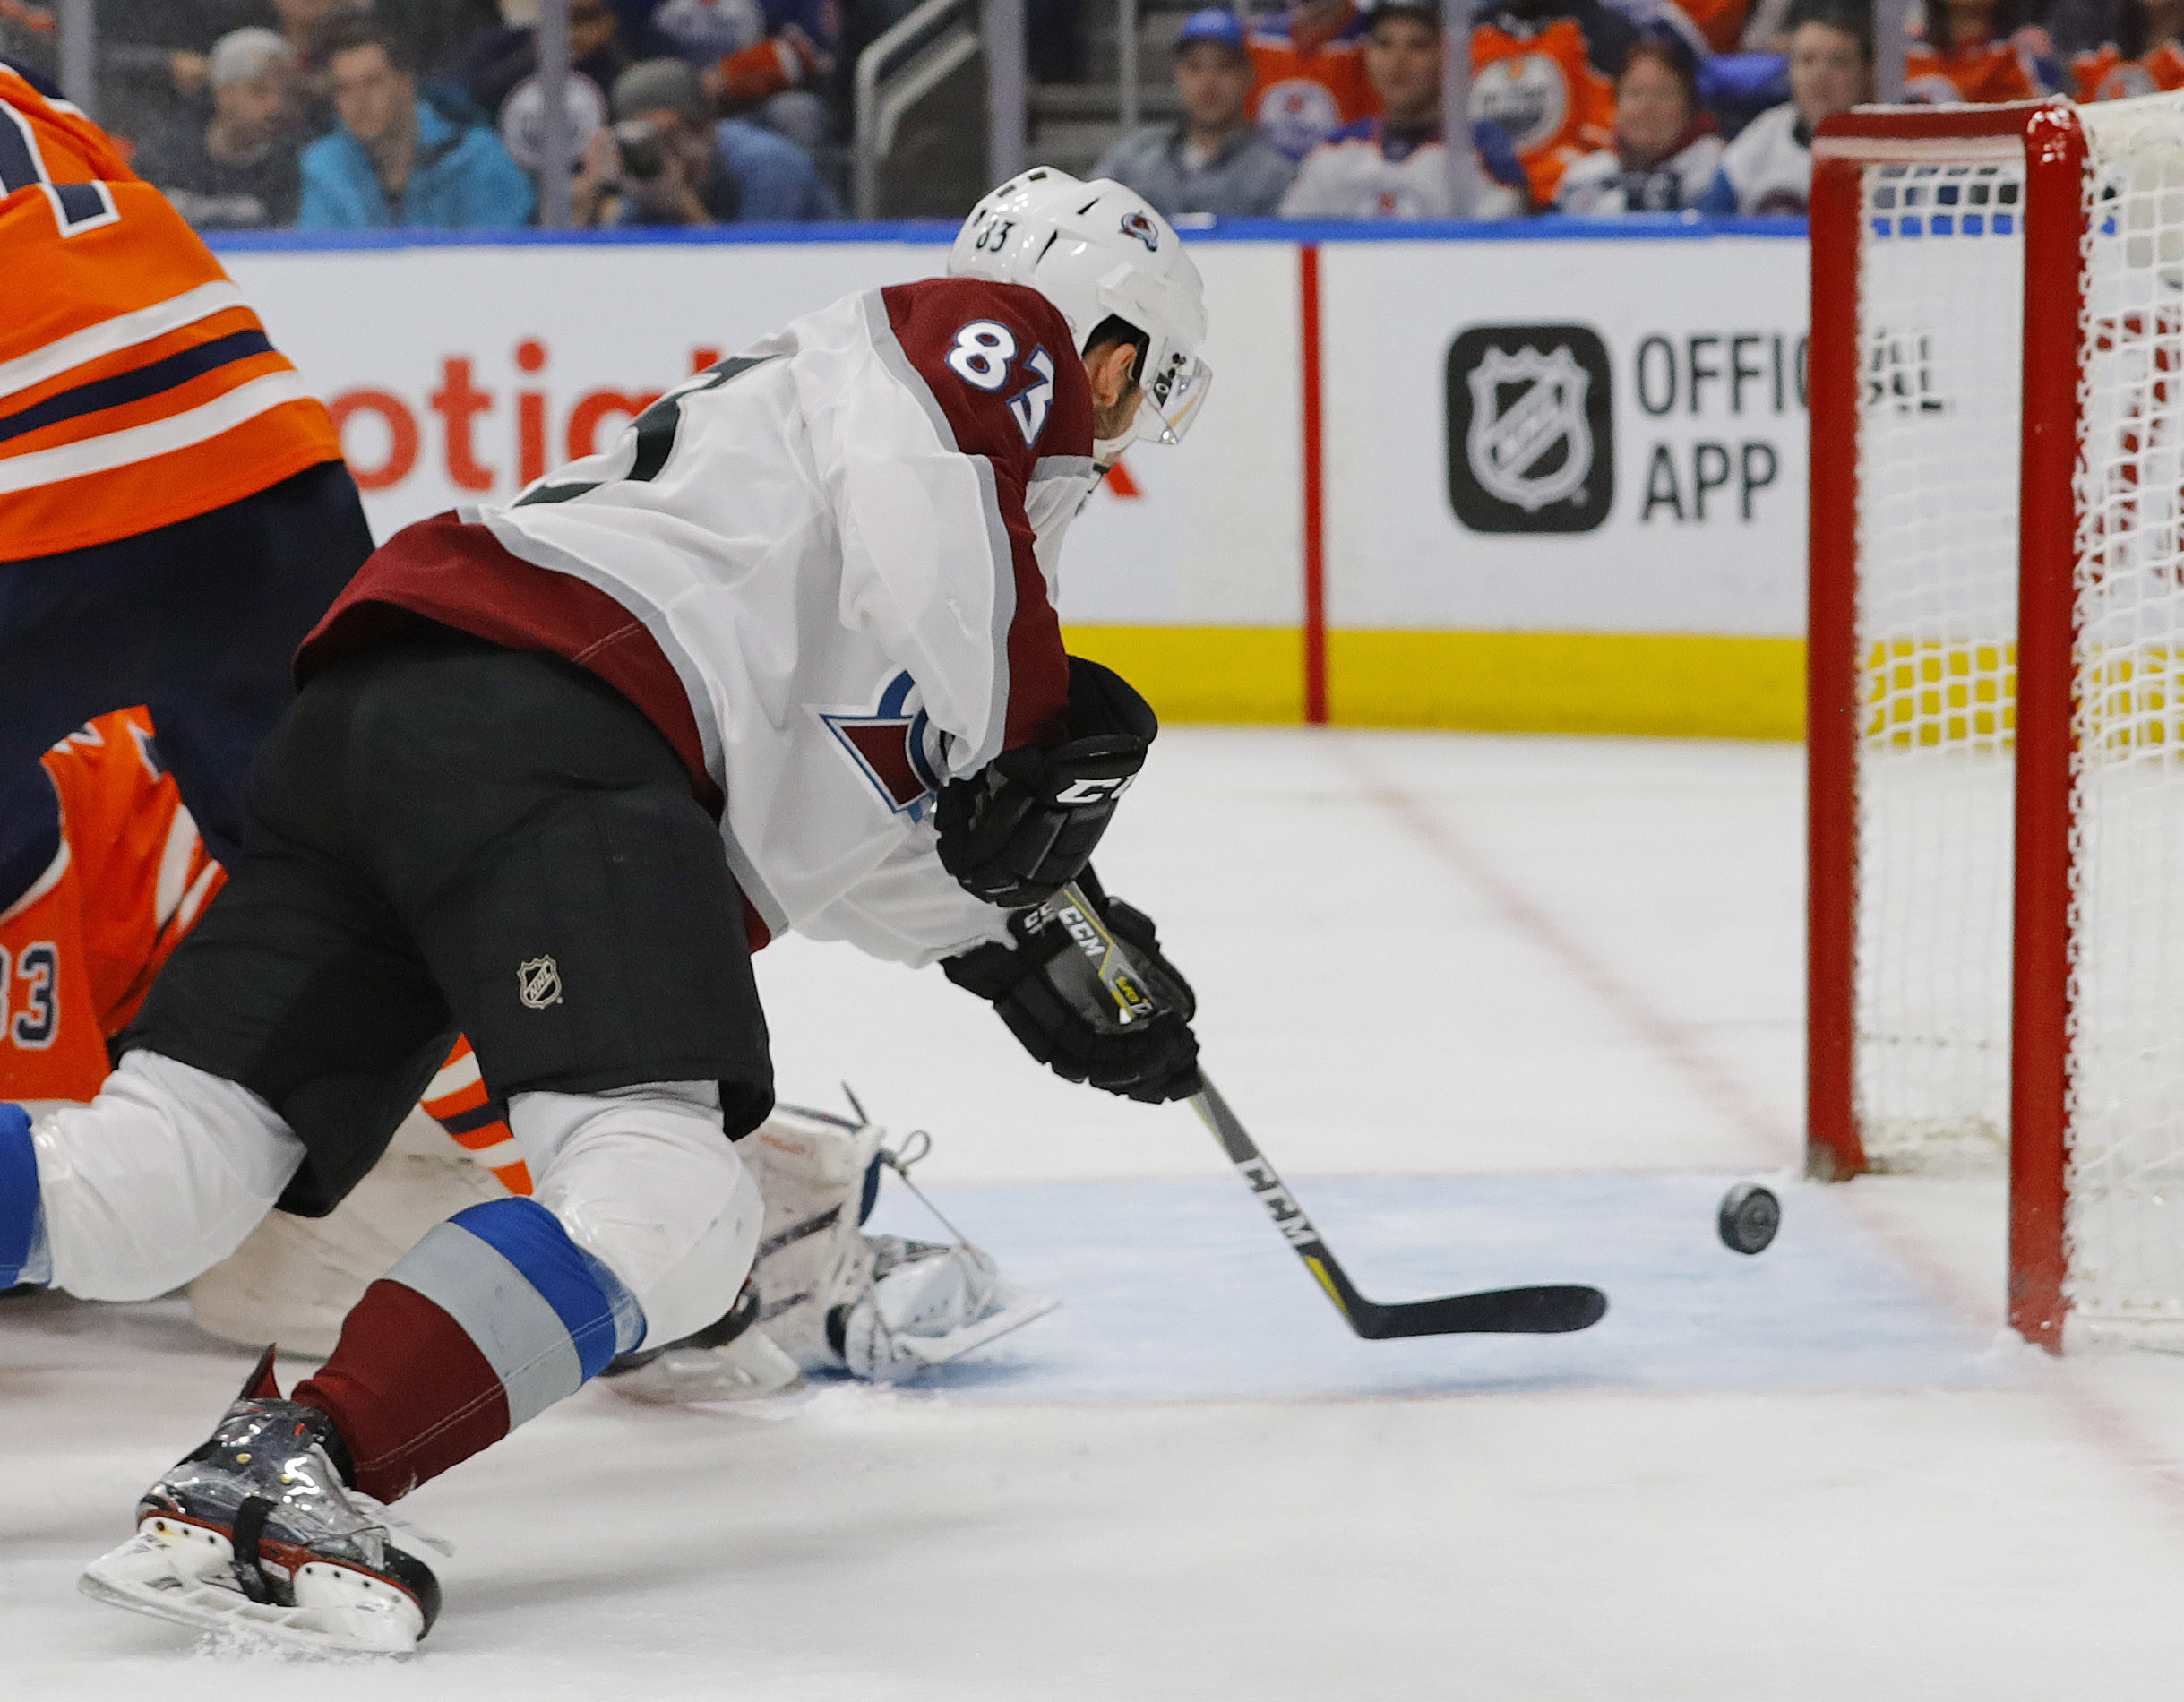 Colorado Avalanche fail to contain Draisaitl McDavid lose in overtime 3 2